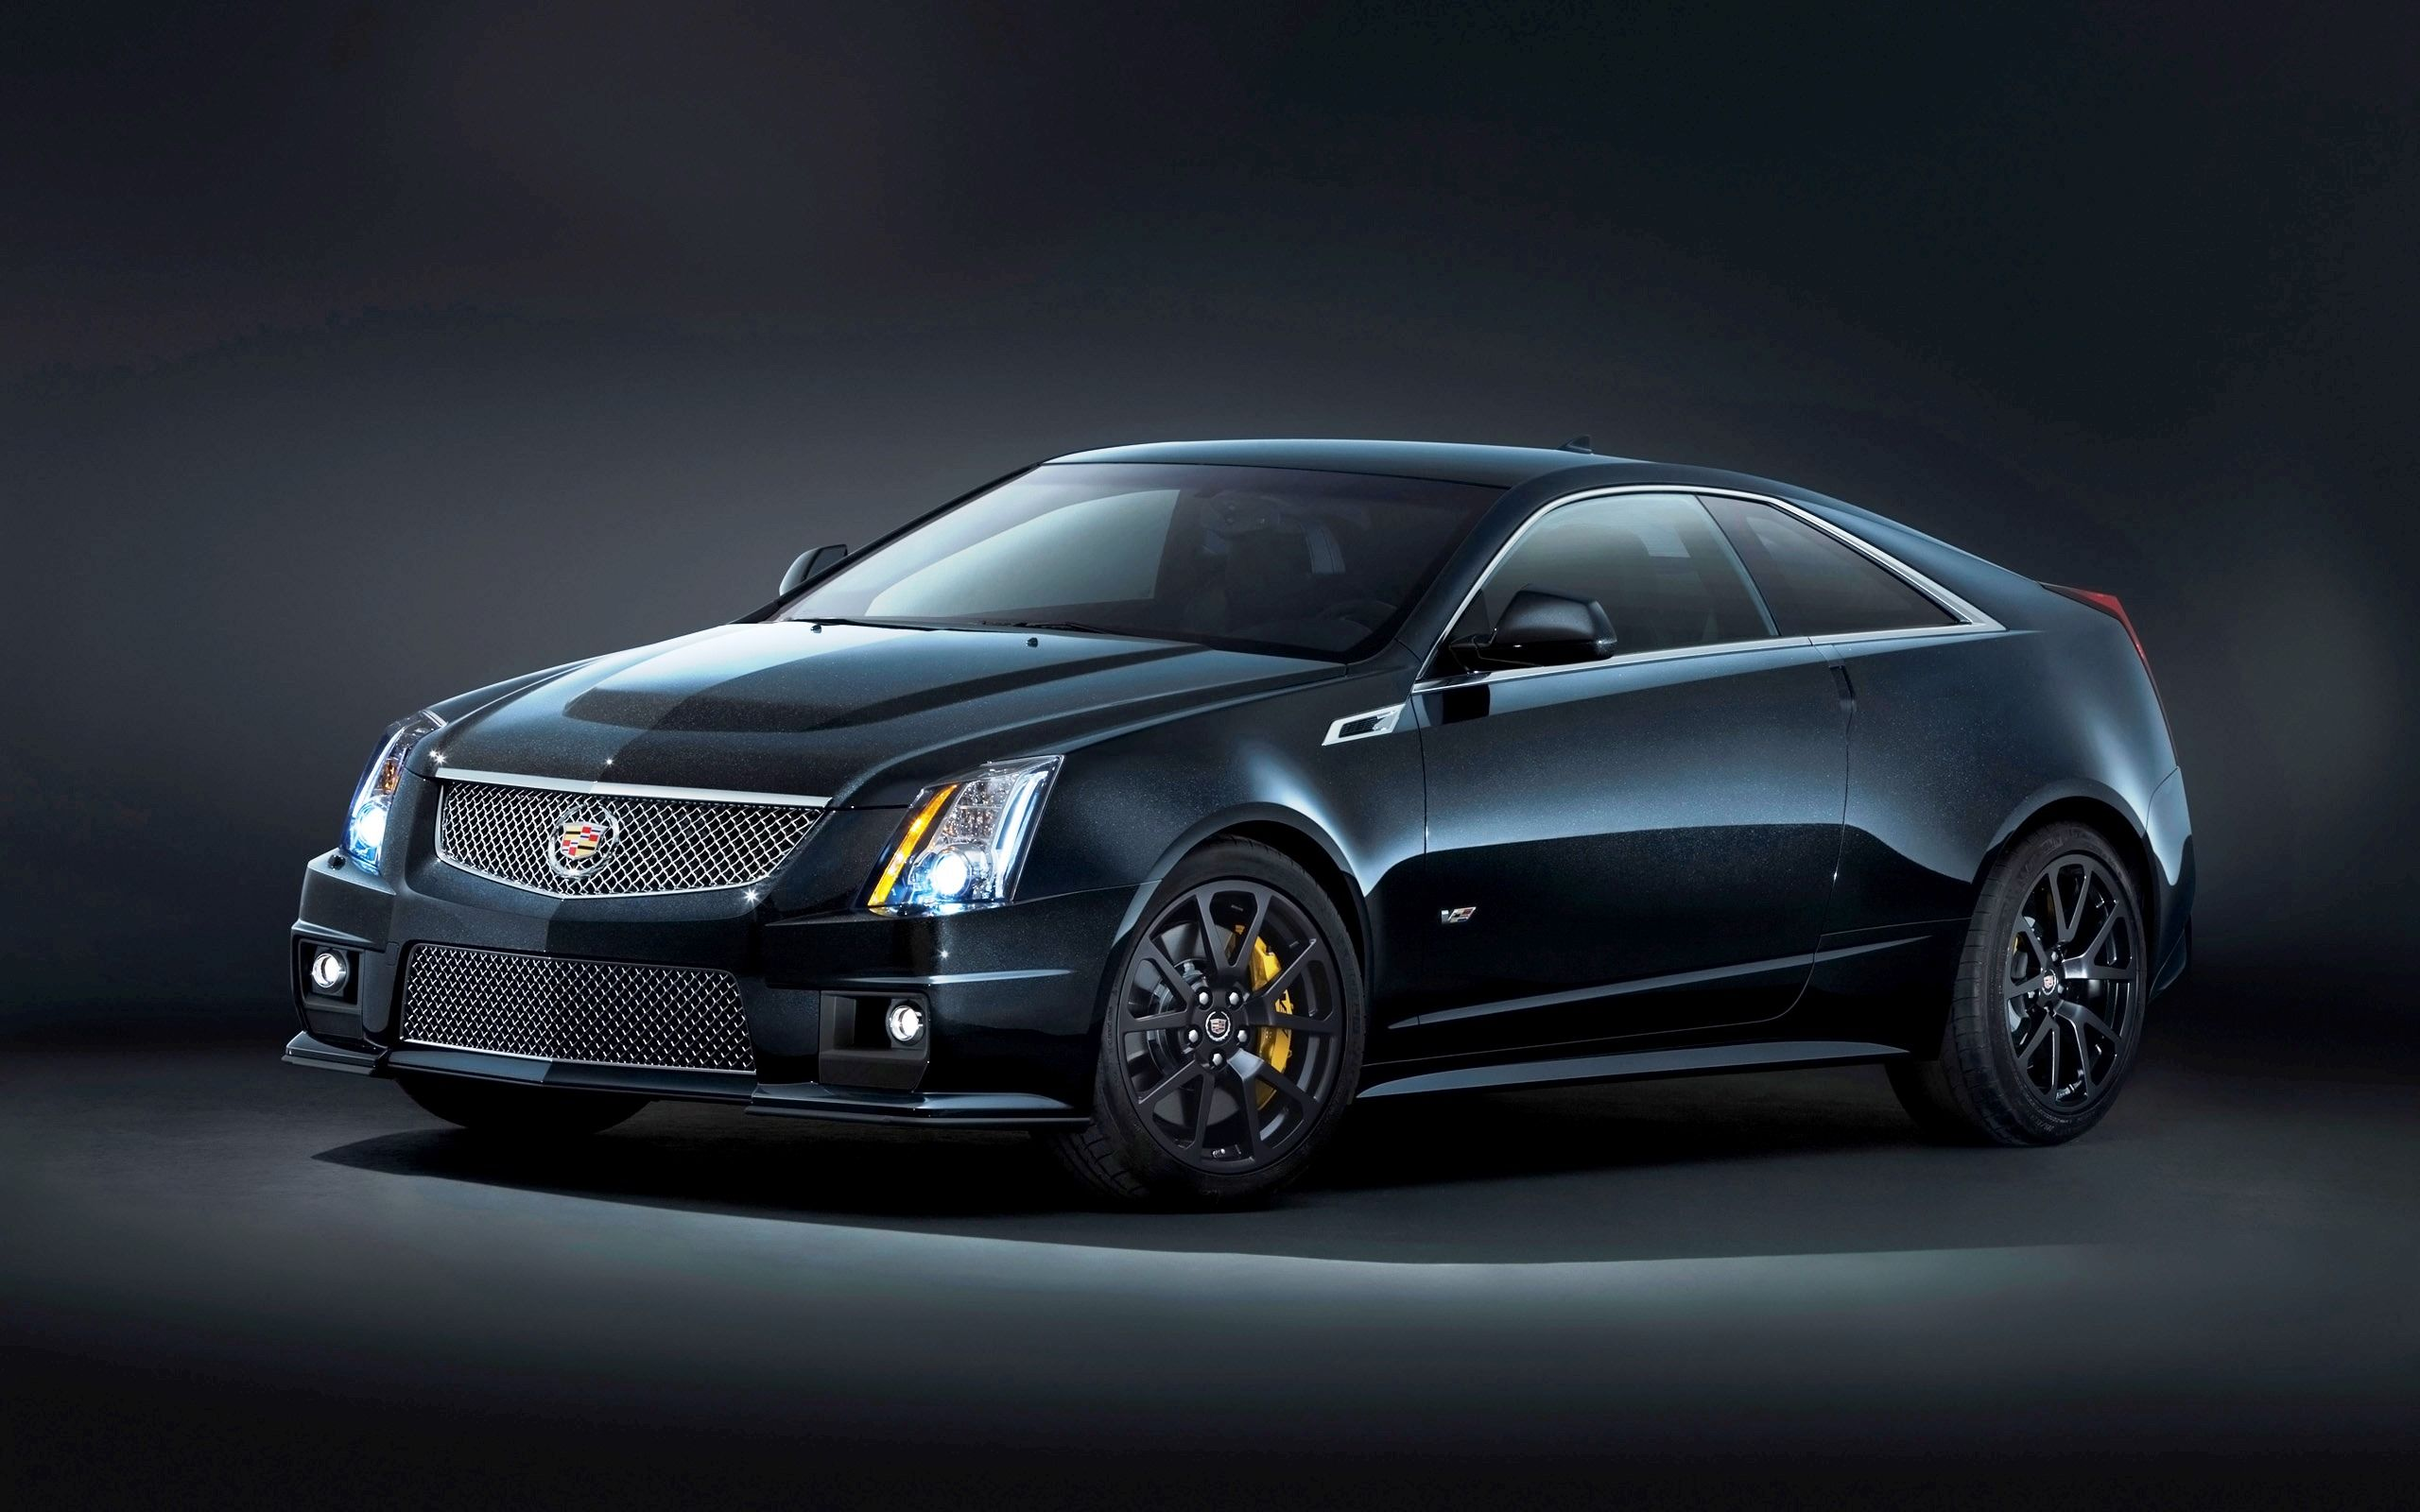 Pictures Of 2016 Cadillac Cts V Sport Photo Gallery The Coupe And Sedan